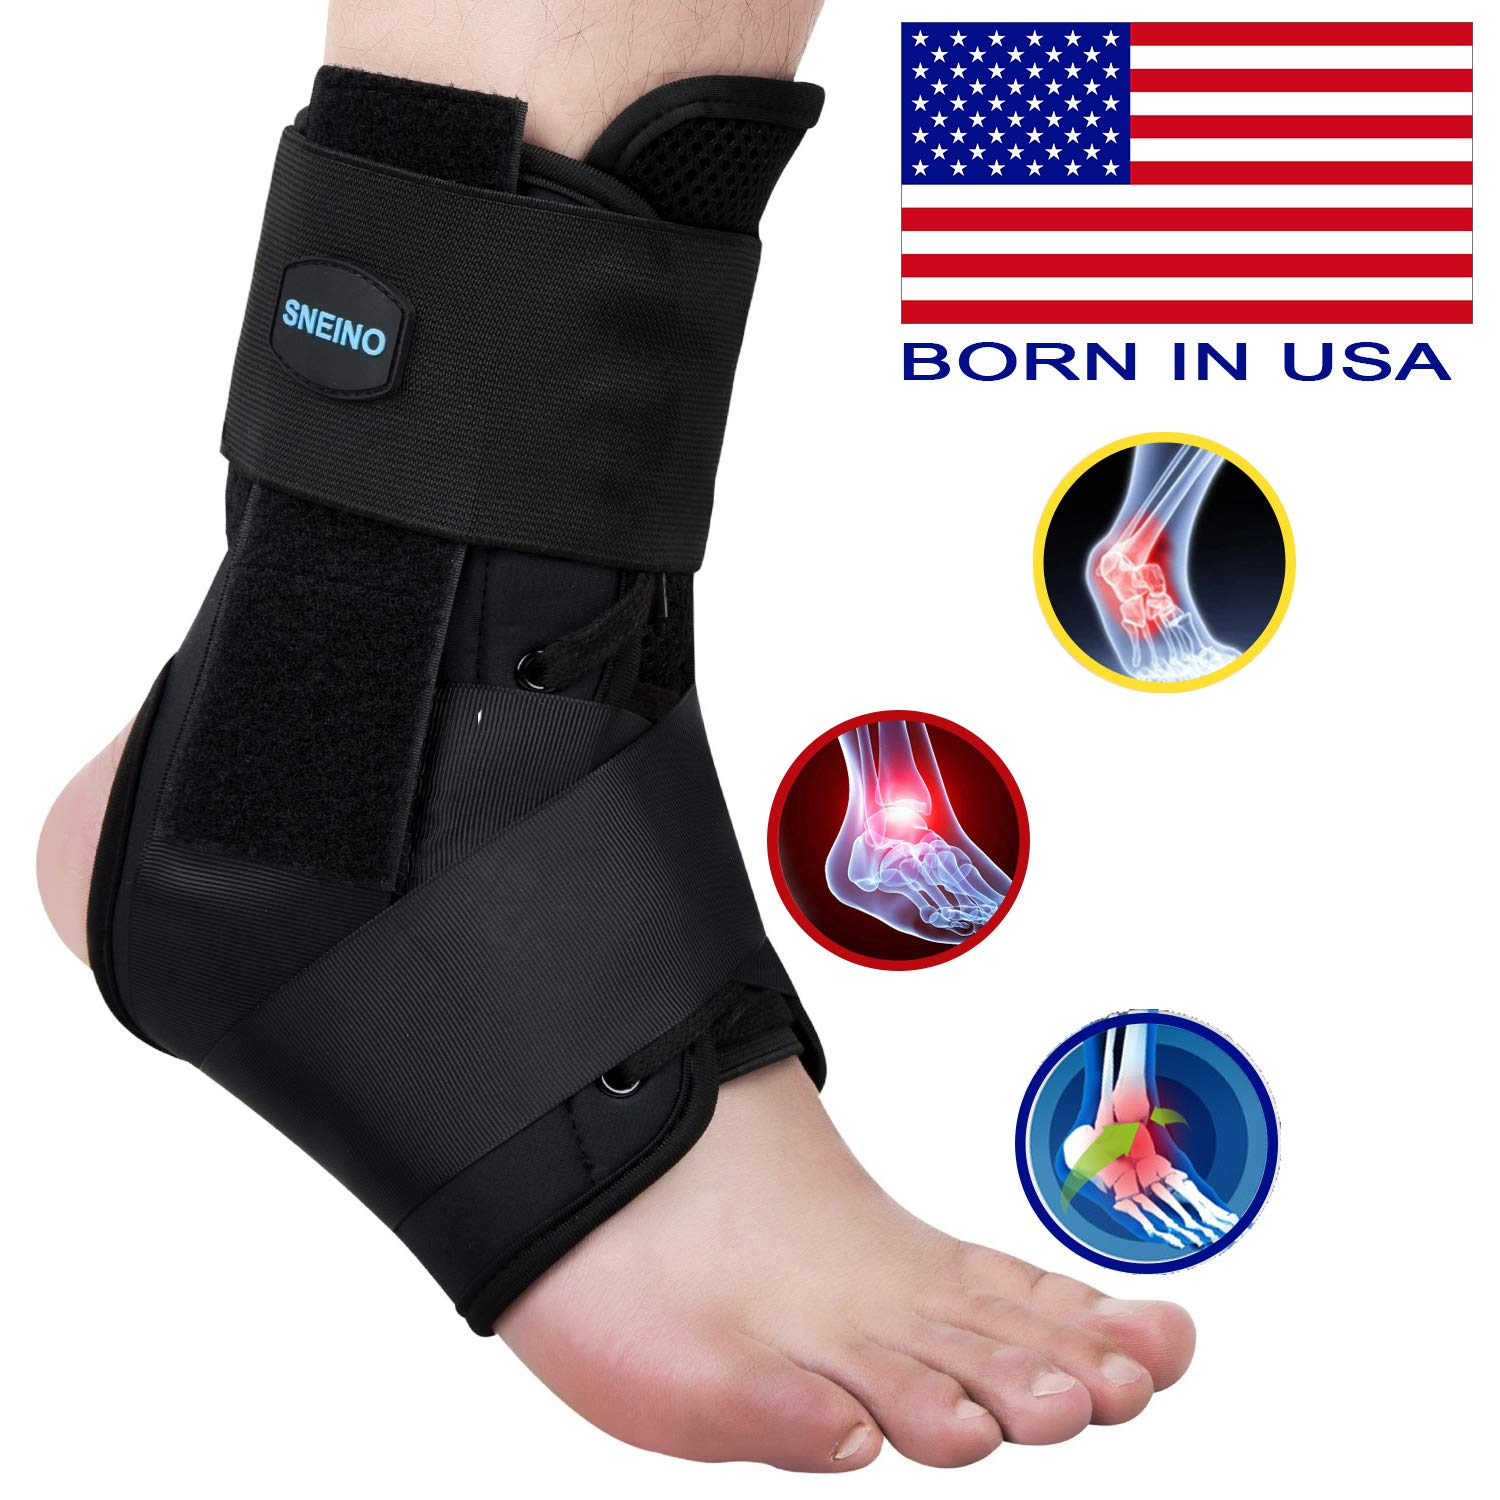 SNEINO Ankle Brace,Lace Up Ankle Brace for Women,Ankle Brace for Sprained Ankle,Ankle Supports for Women,Kids,Ankle Braces for Basketball,Volleyball Ankle Braces,Ankle Stabilizer for Women(Large)